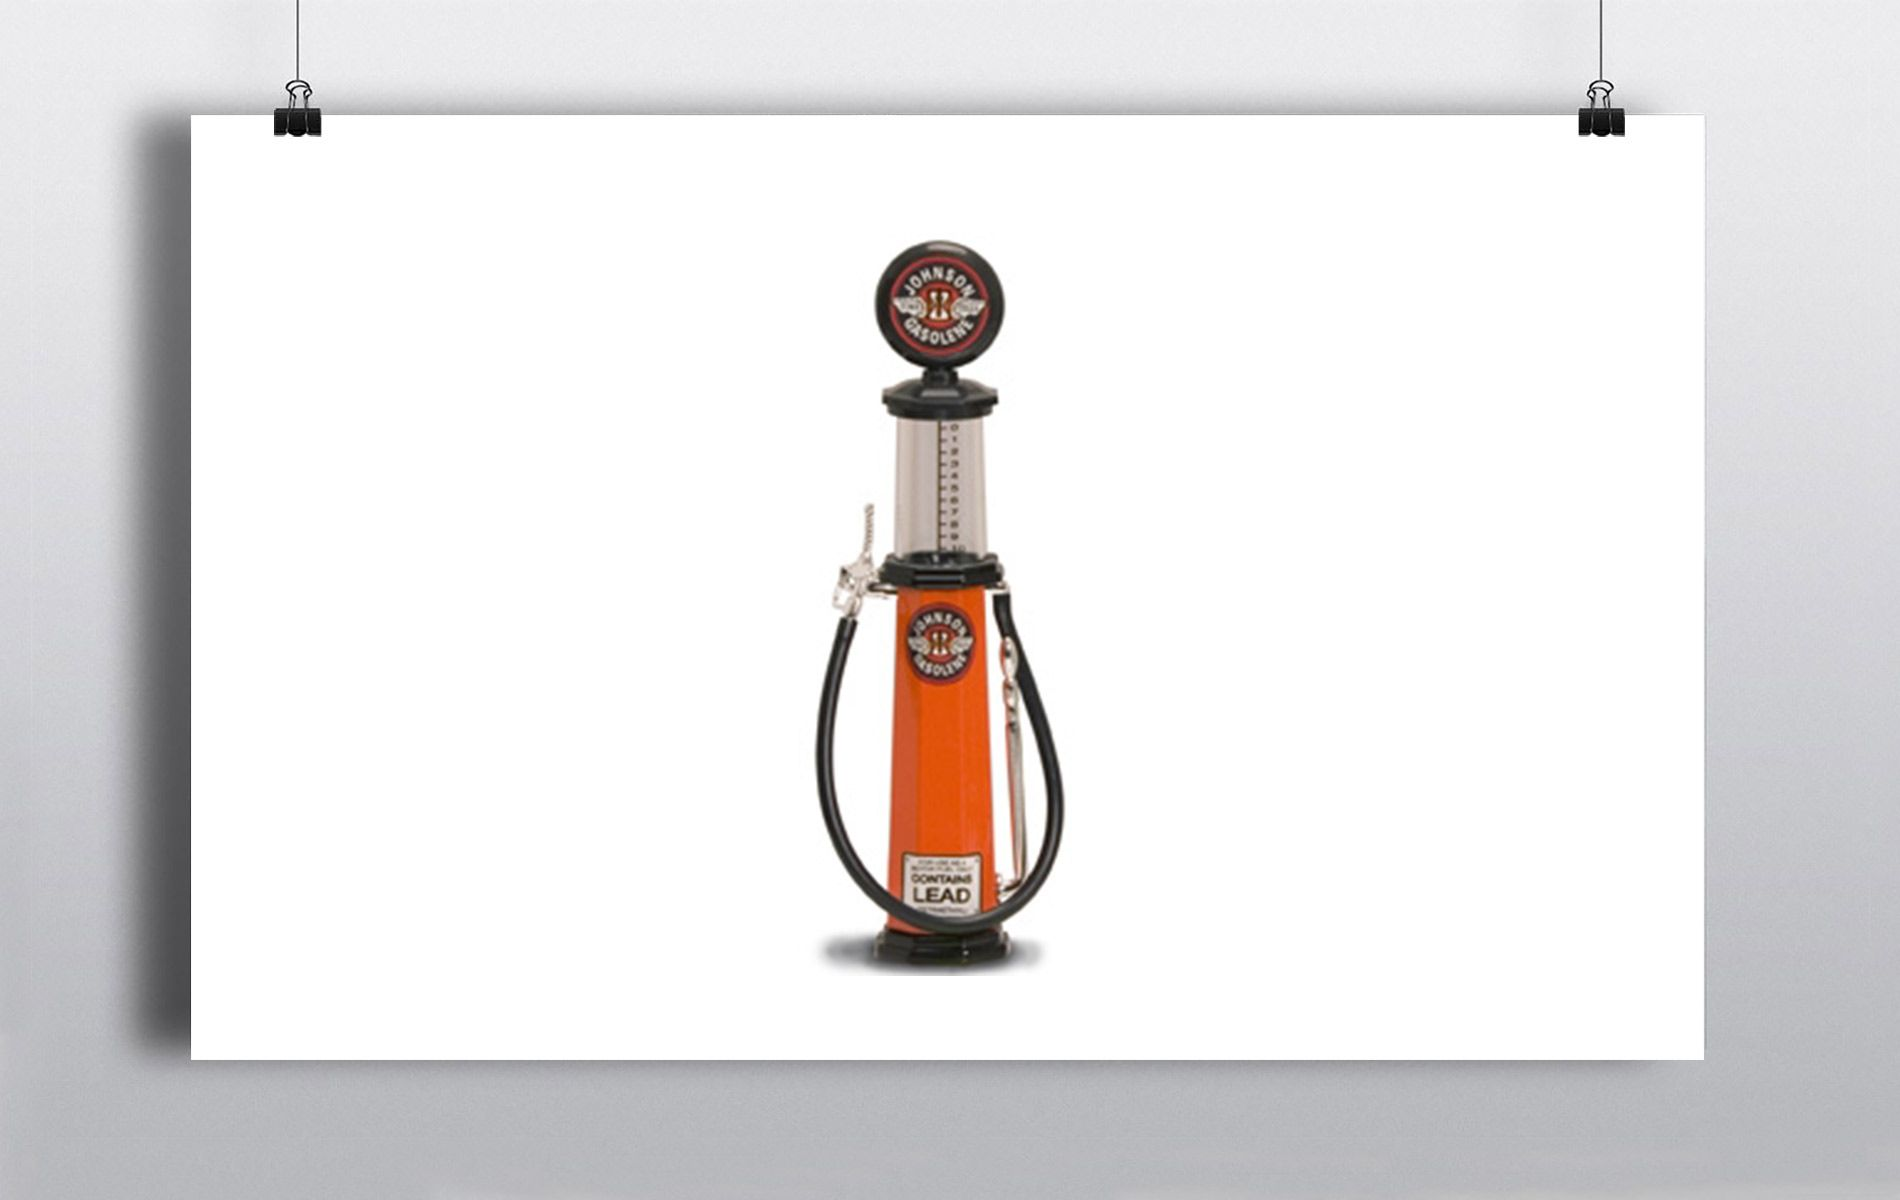 American replica petrol pump measuring 230cm in Height http://www.prophouse.ie/portfolio/gasoline-pump/